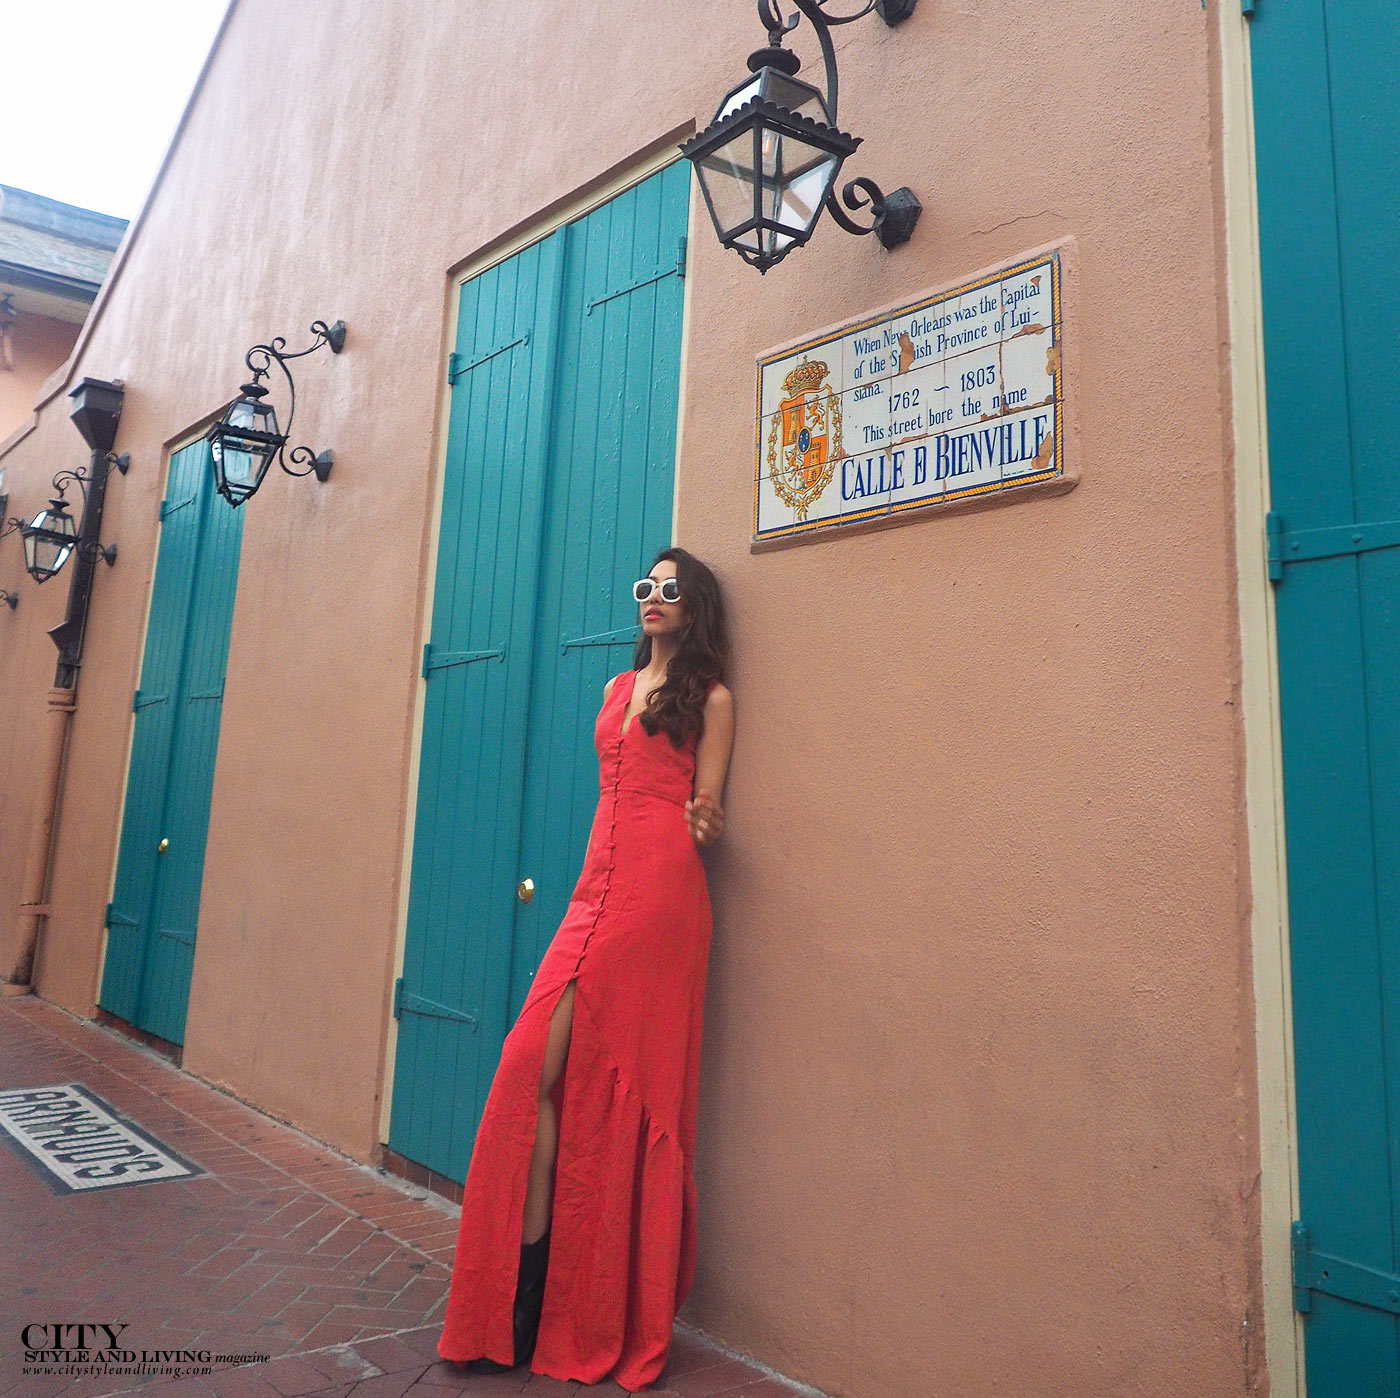 City style and living magazine The Editors Notebook style fashion blogger Shivana Maharaj New Orleans French Quarter Orange Dress closeup